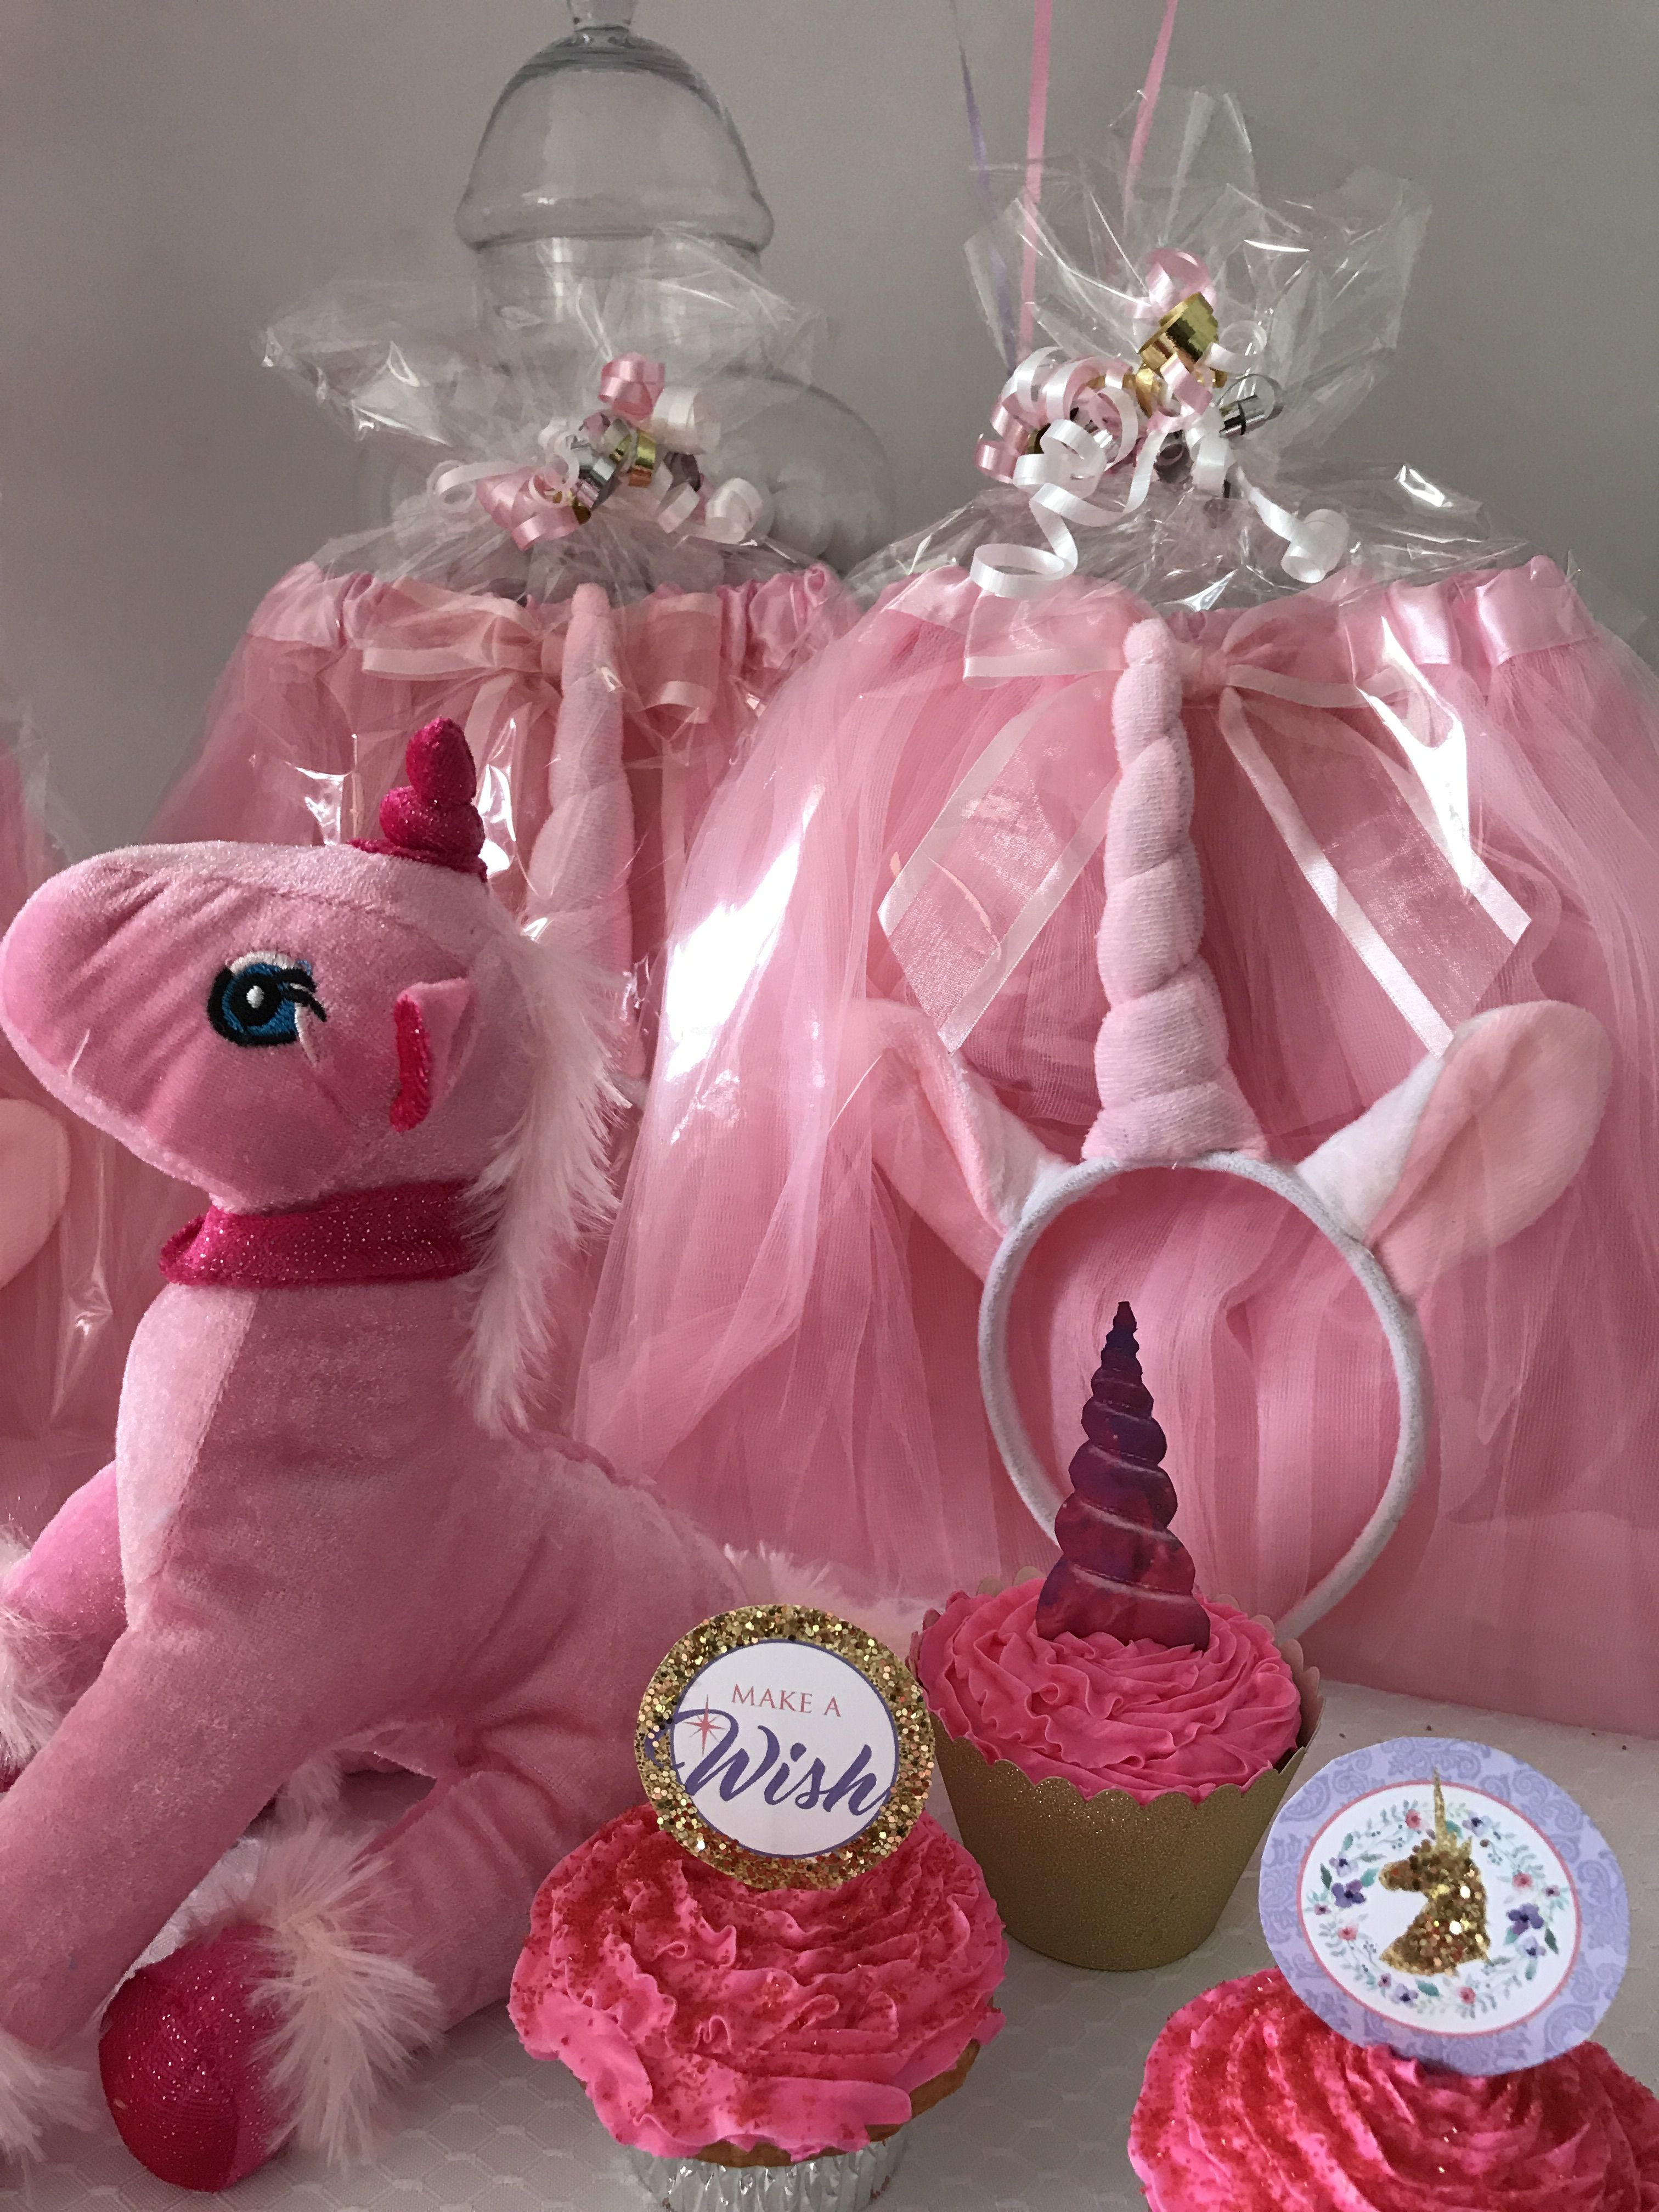 a6201c32170 50% Off Magical Unicorn Party Wrapped Tutu Favors from My Princess Party to  Go are only  8.50 Shop today at www.myprincesspartytogo.com   unicornpartyfavors